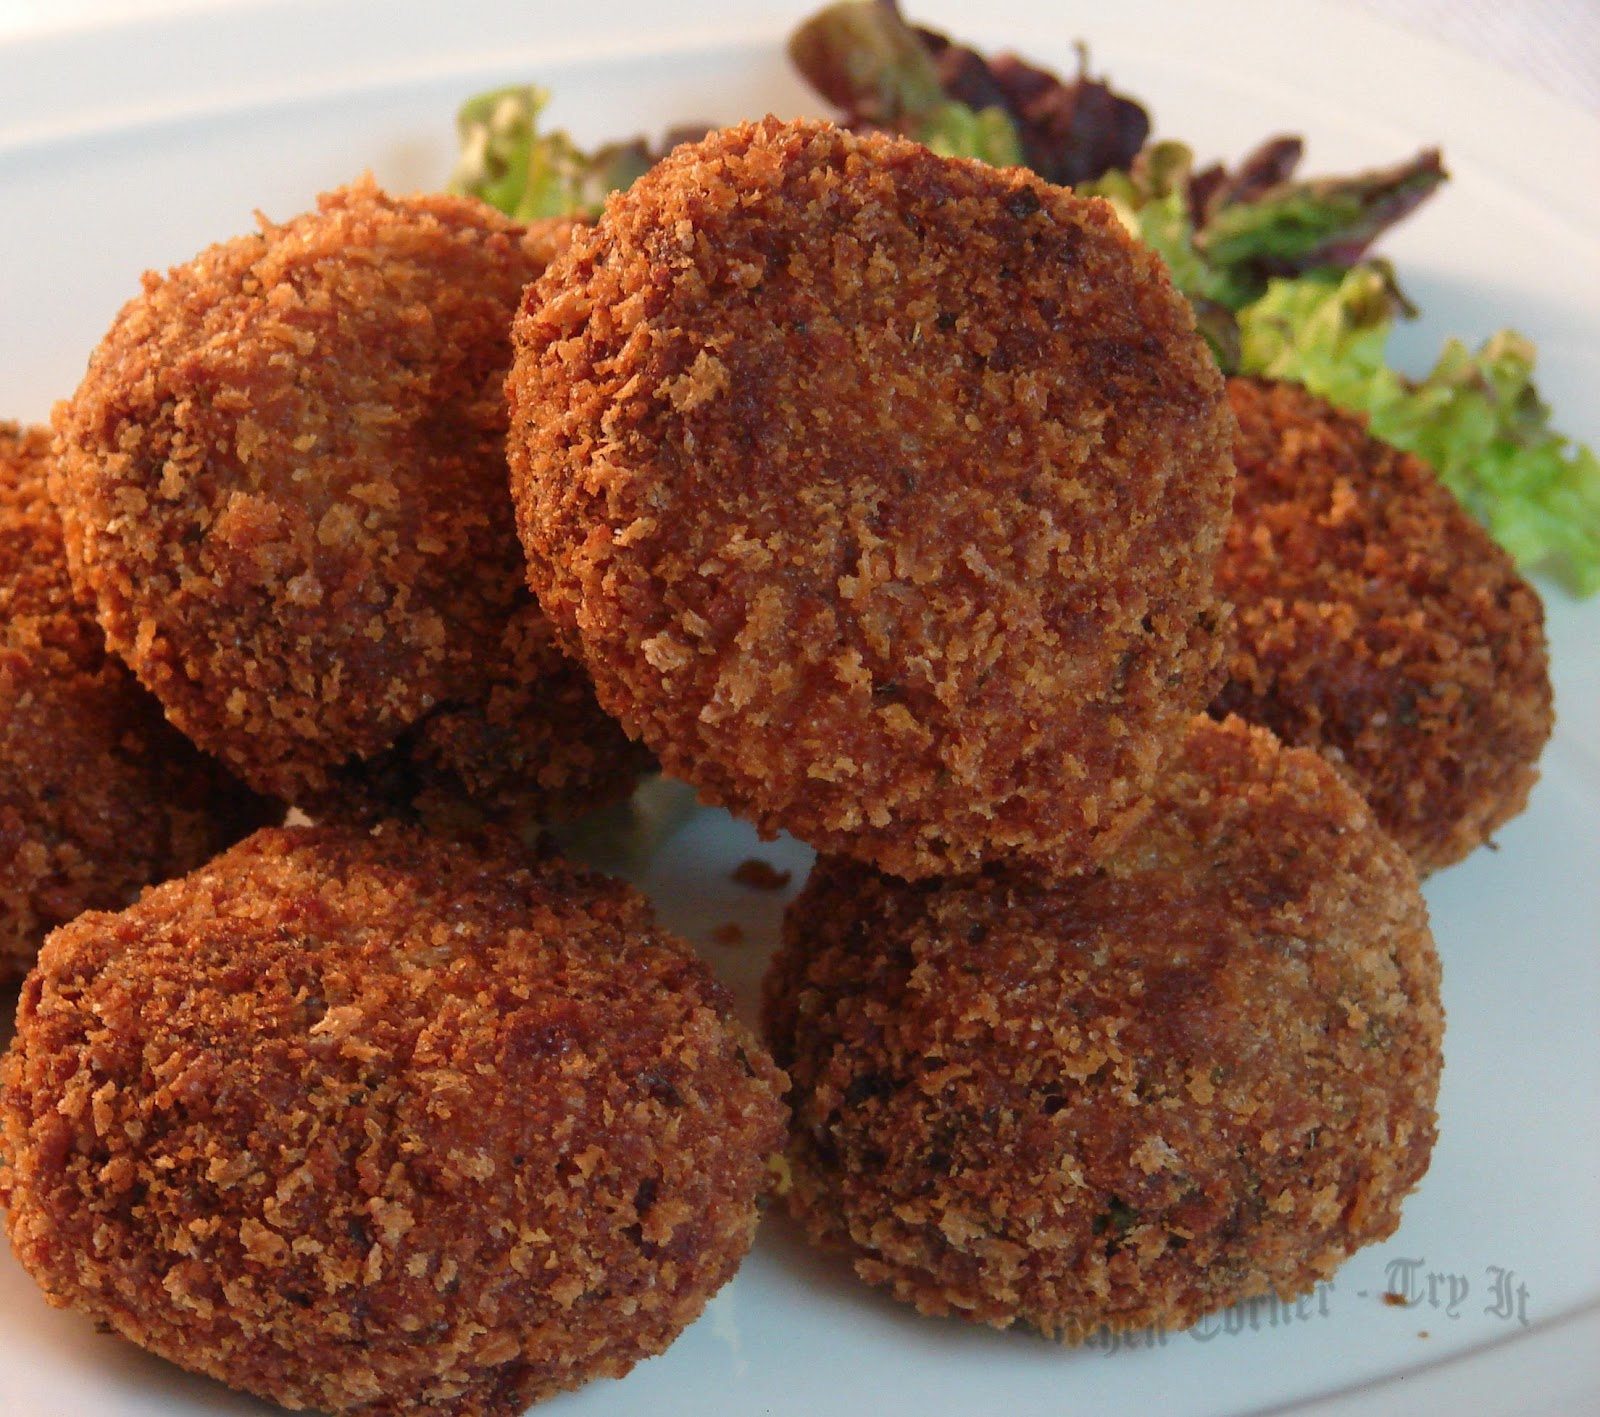 An alternative to meat is vegetable cutlets, a recipe